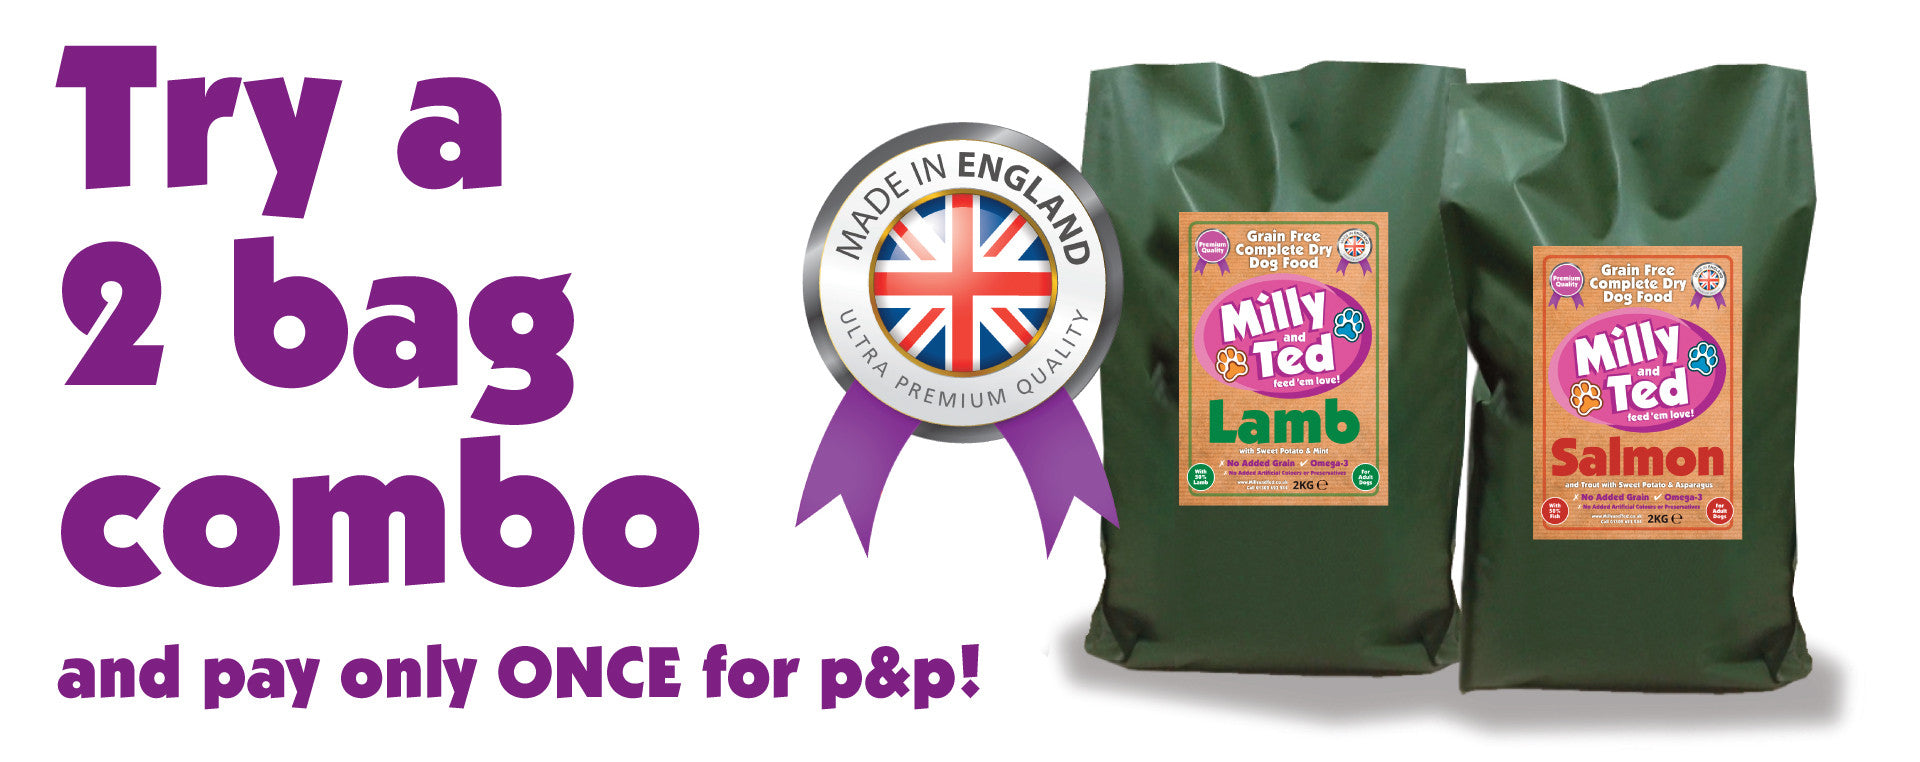 Milly and Ted – 2 bag combo